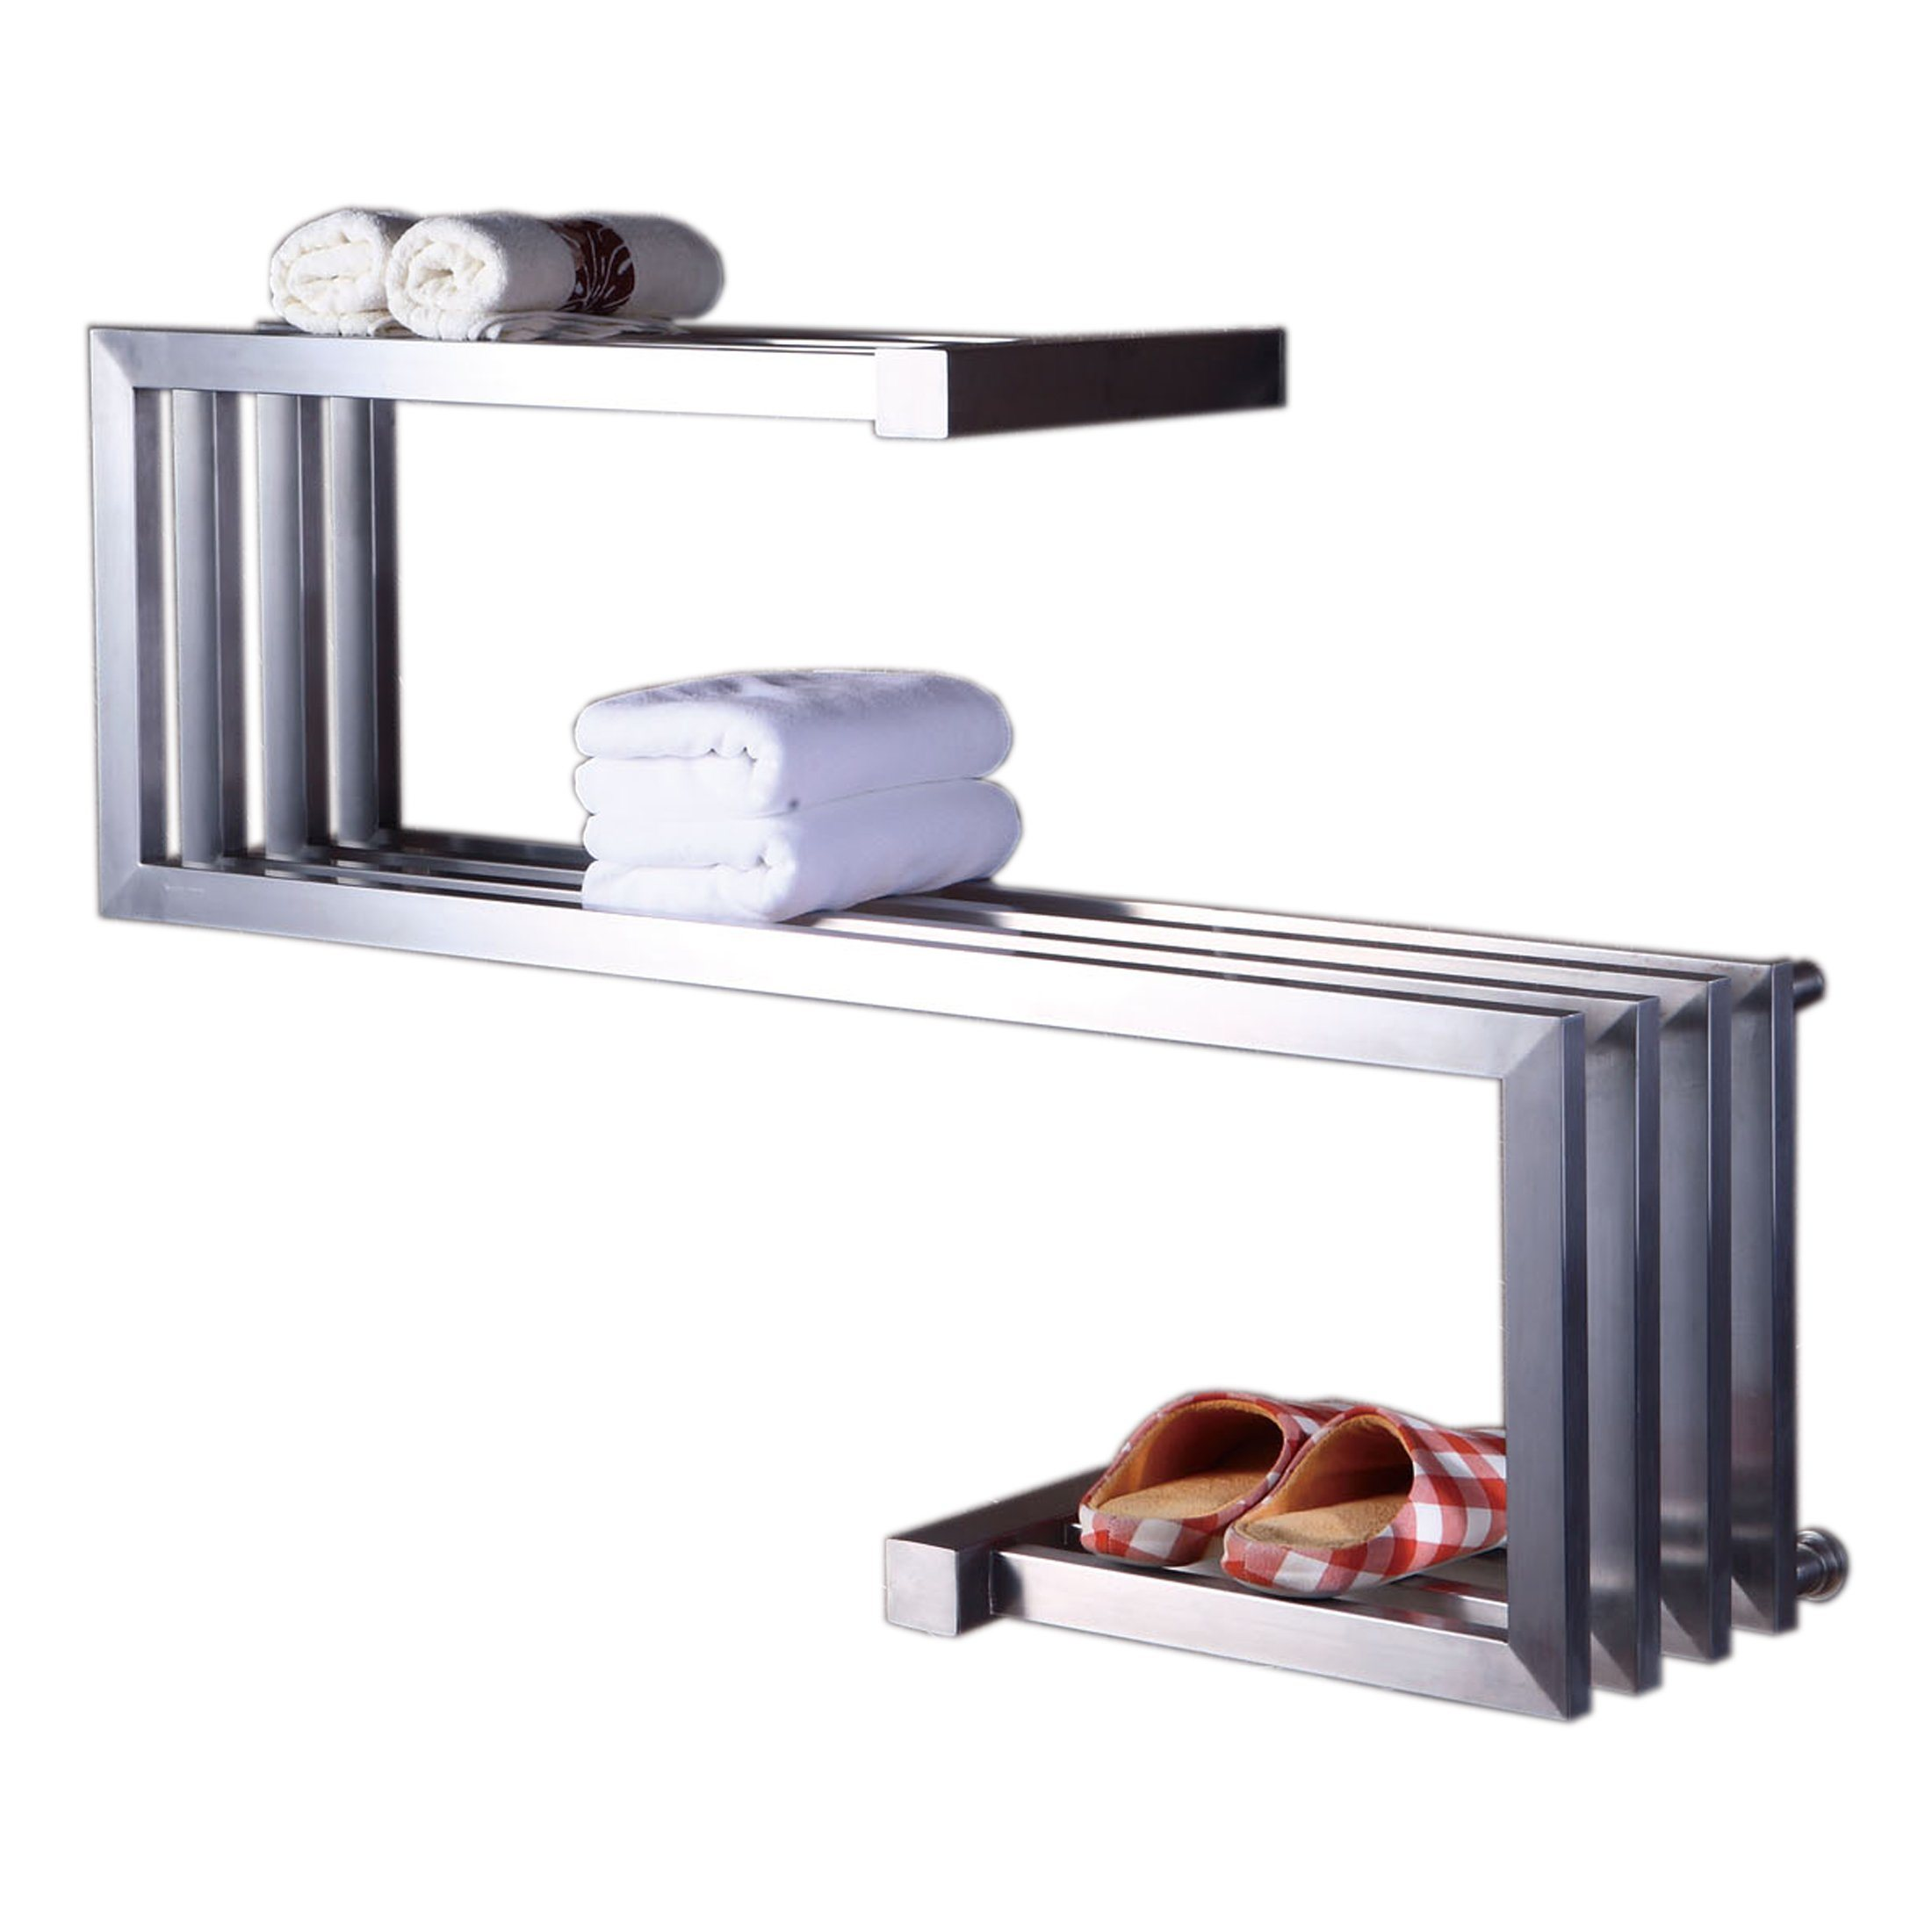 China Free Standing Towel Warmer Towel Dryer Bathroom Accessories